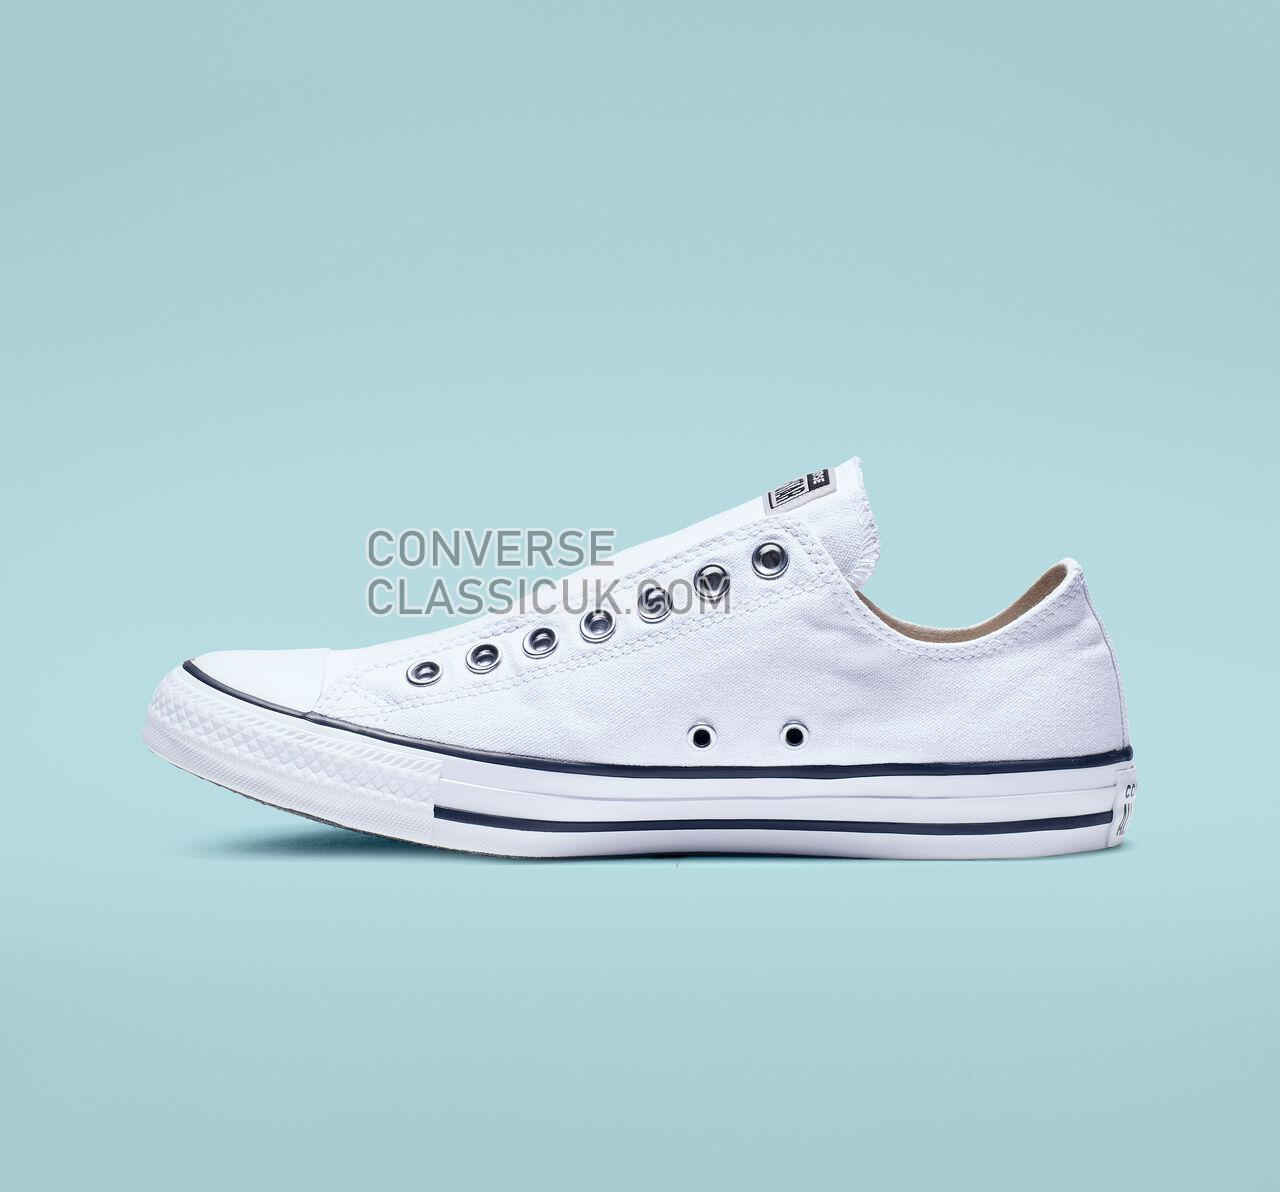 Converse Chuck Taylor All Star Slip Mens Womens Unisex 164301F White/Black/White Shoes